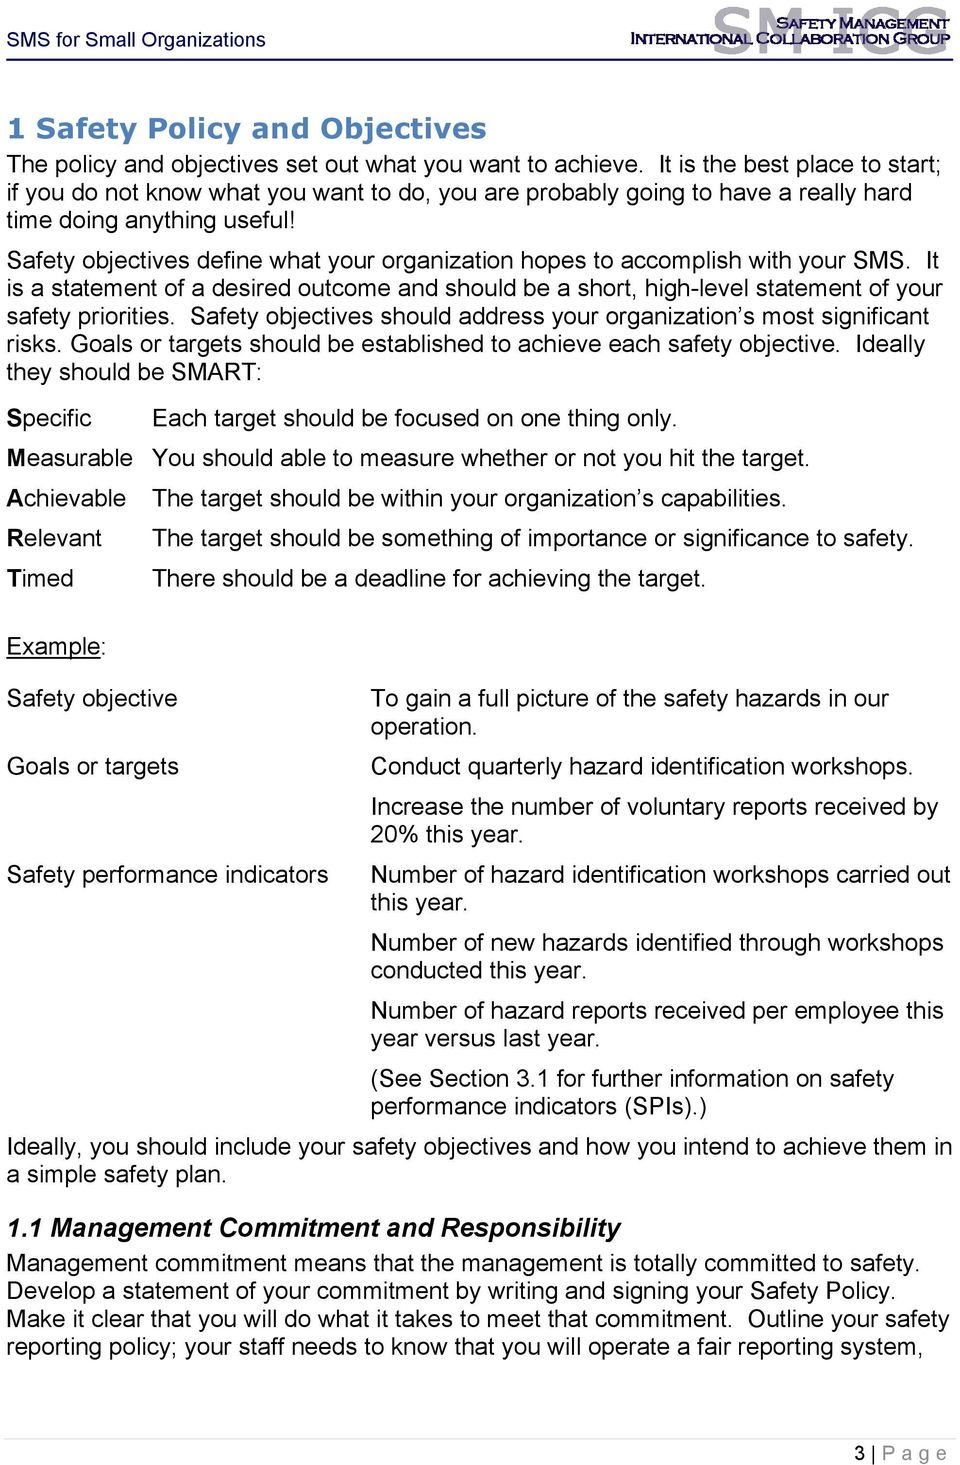 Safety objectives define what your organization hopes to accomplish with your SMS. It is a statement of a desired outcome and should be a short, high-level statement of your safety priorities.